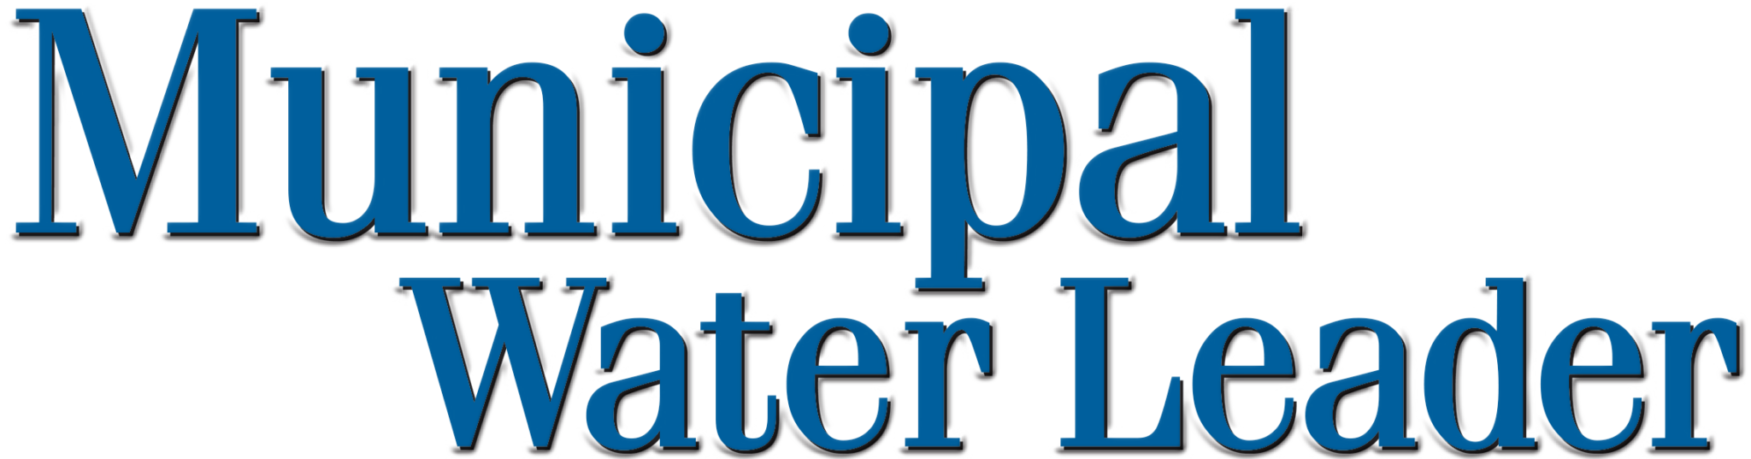 Municipal Water Leader